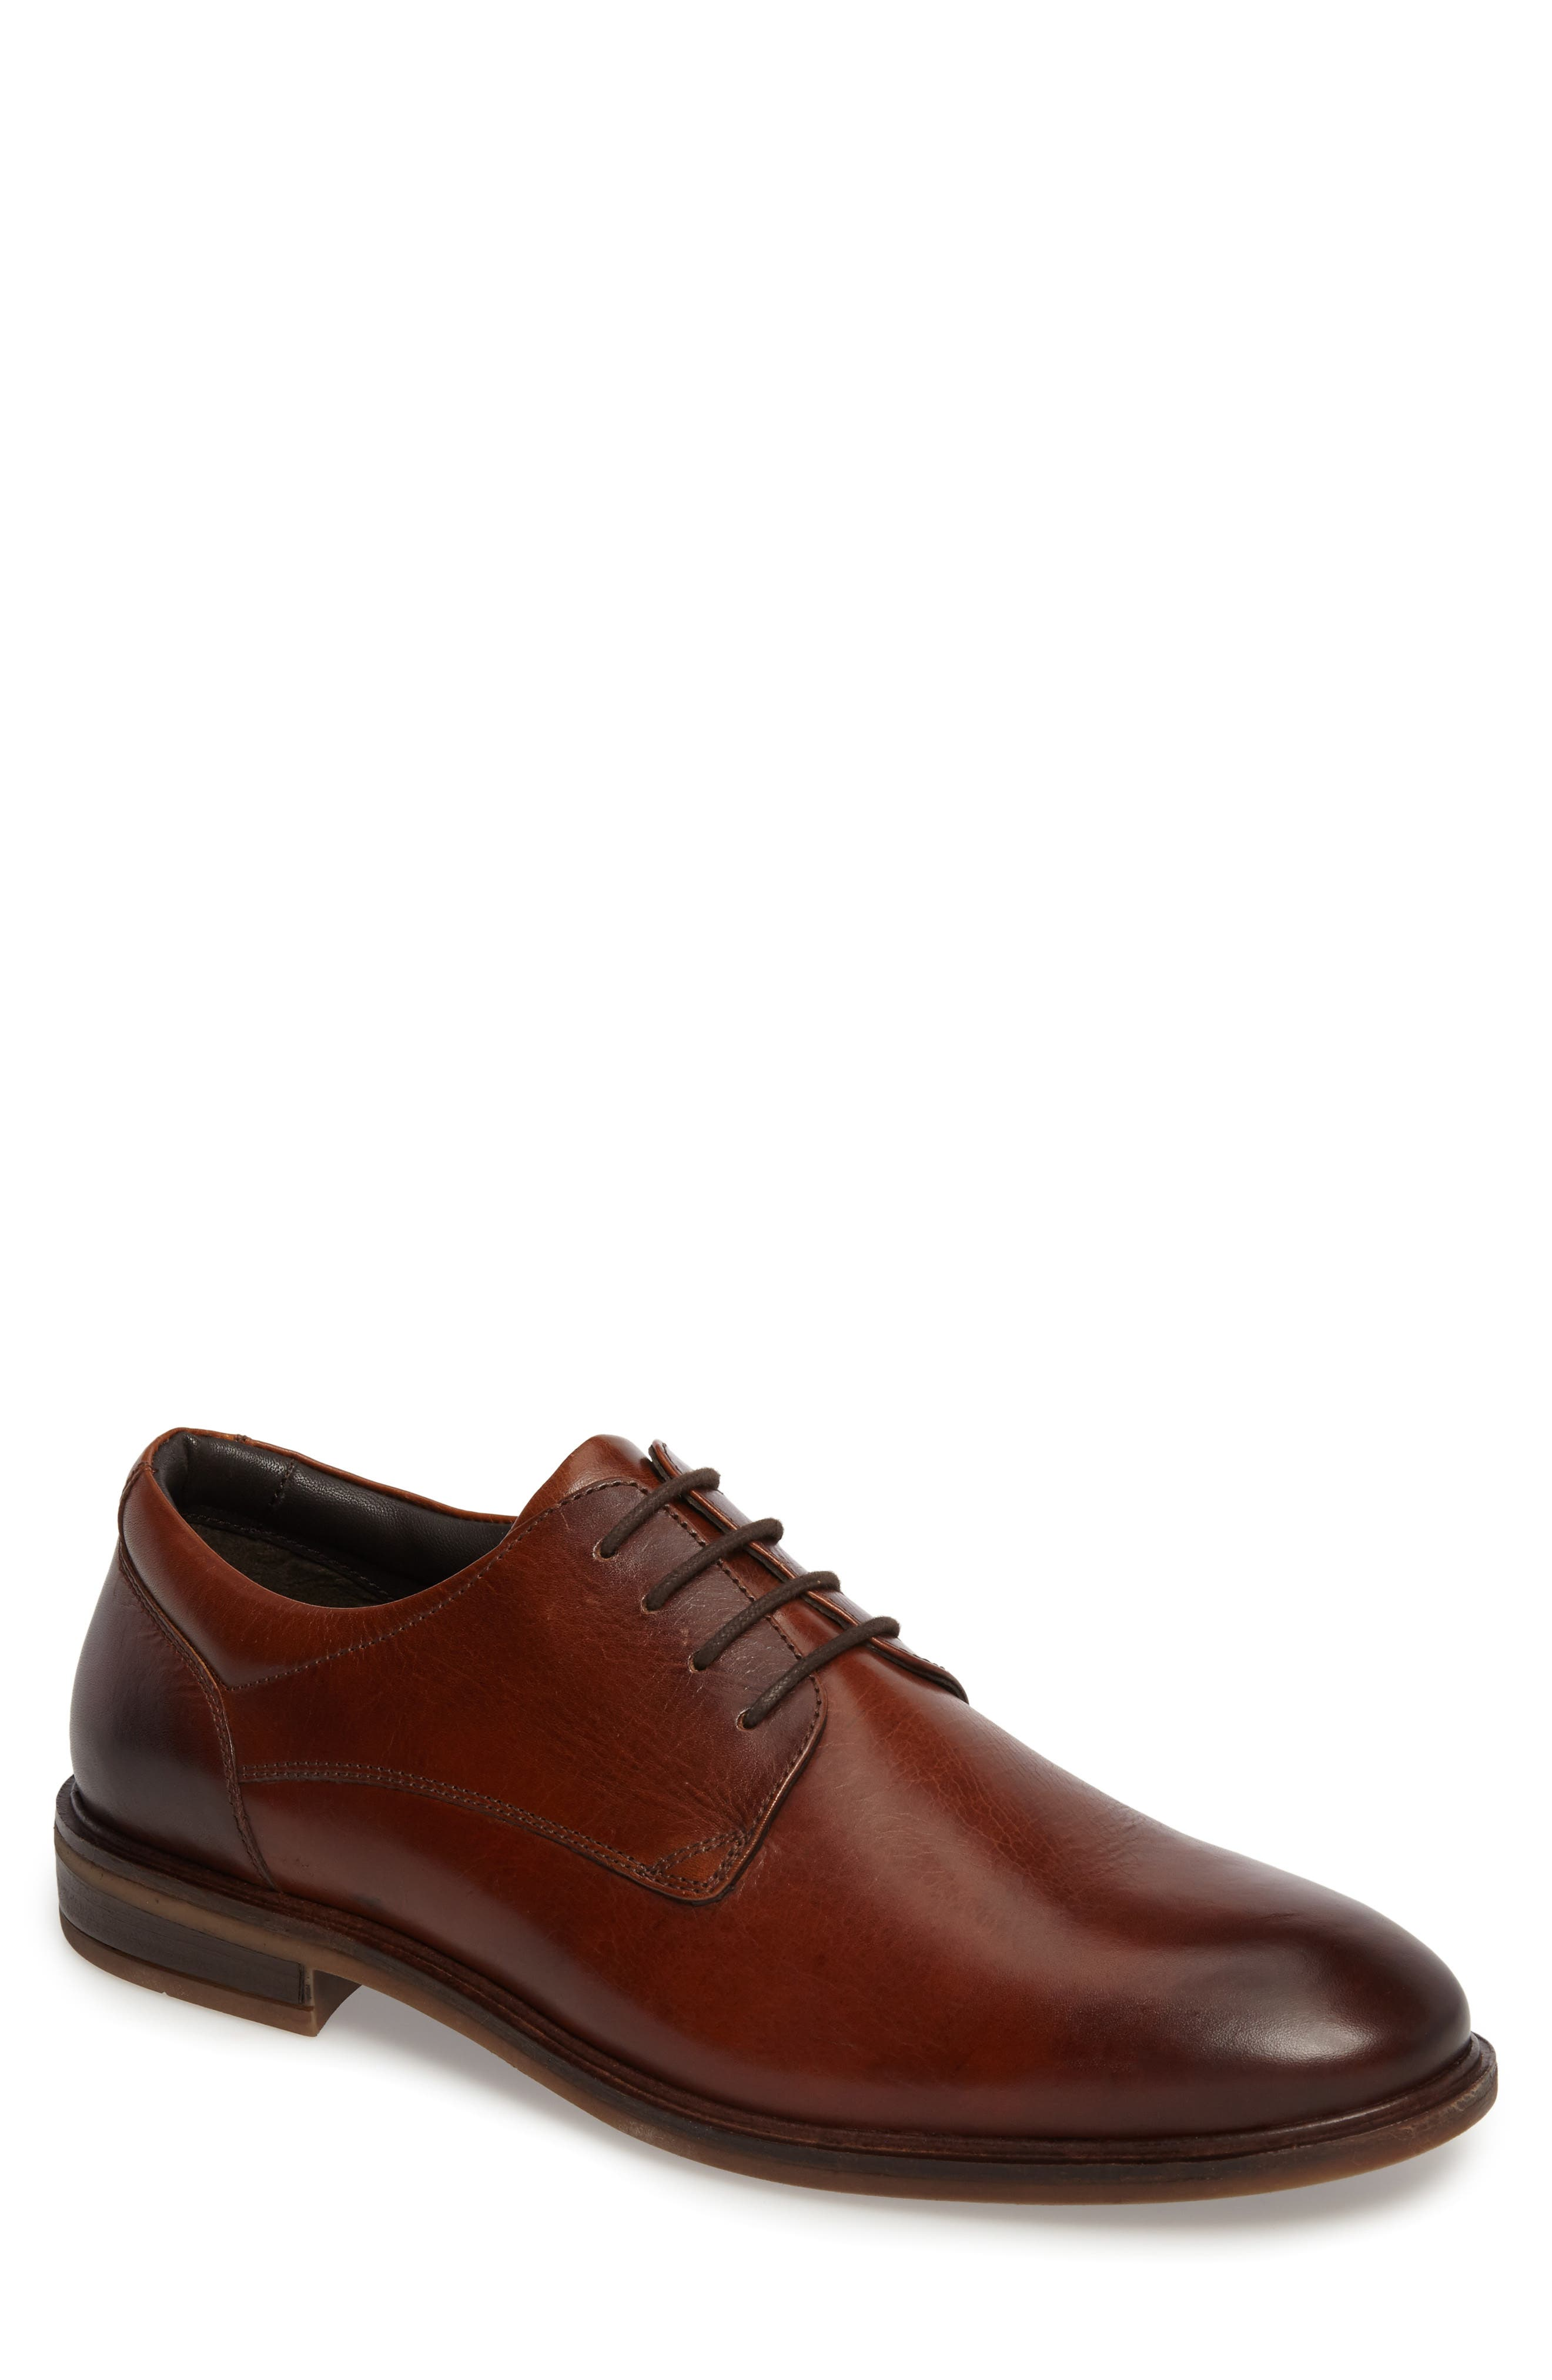 Josef Seibel Myles 07 Plain Toe Derby (Men)